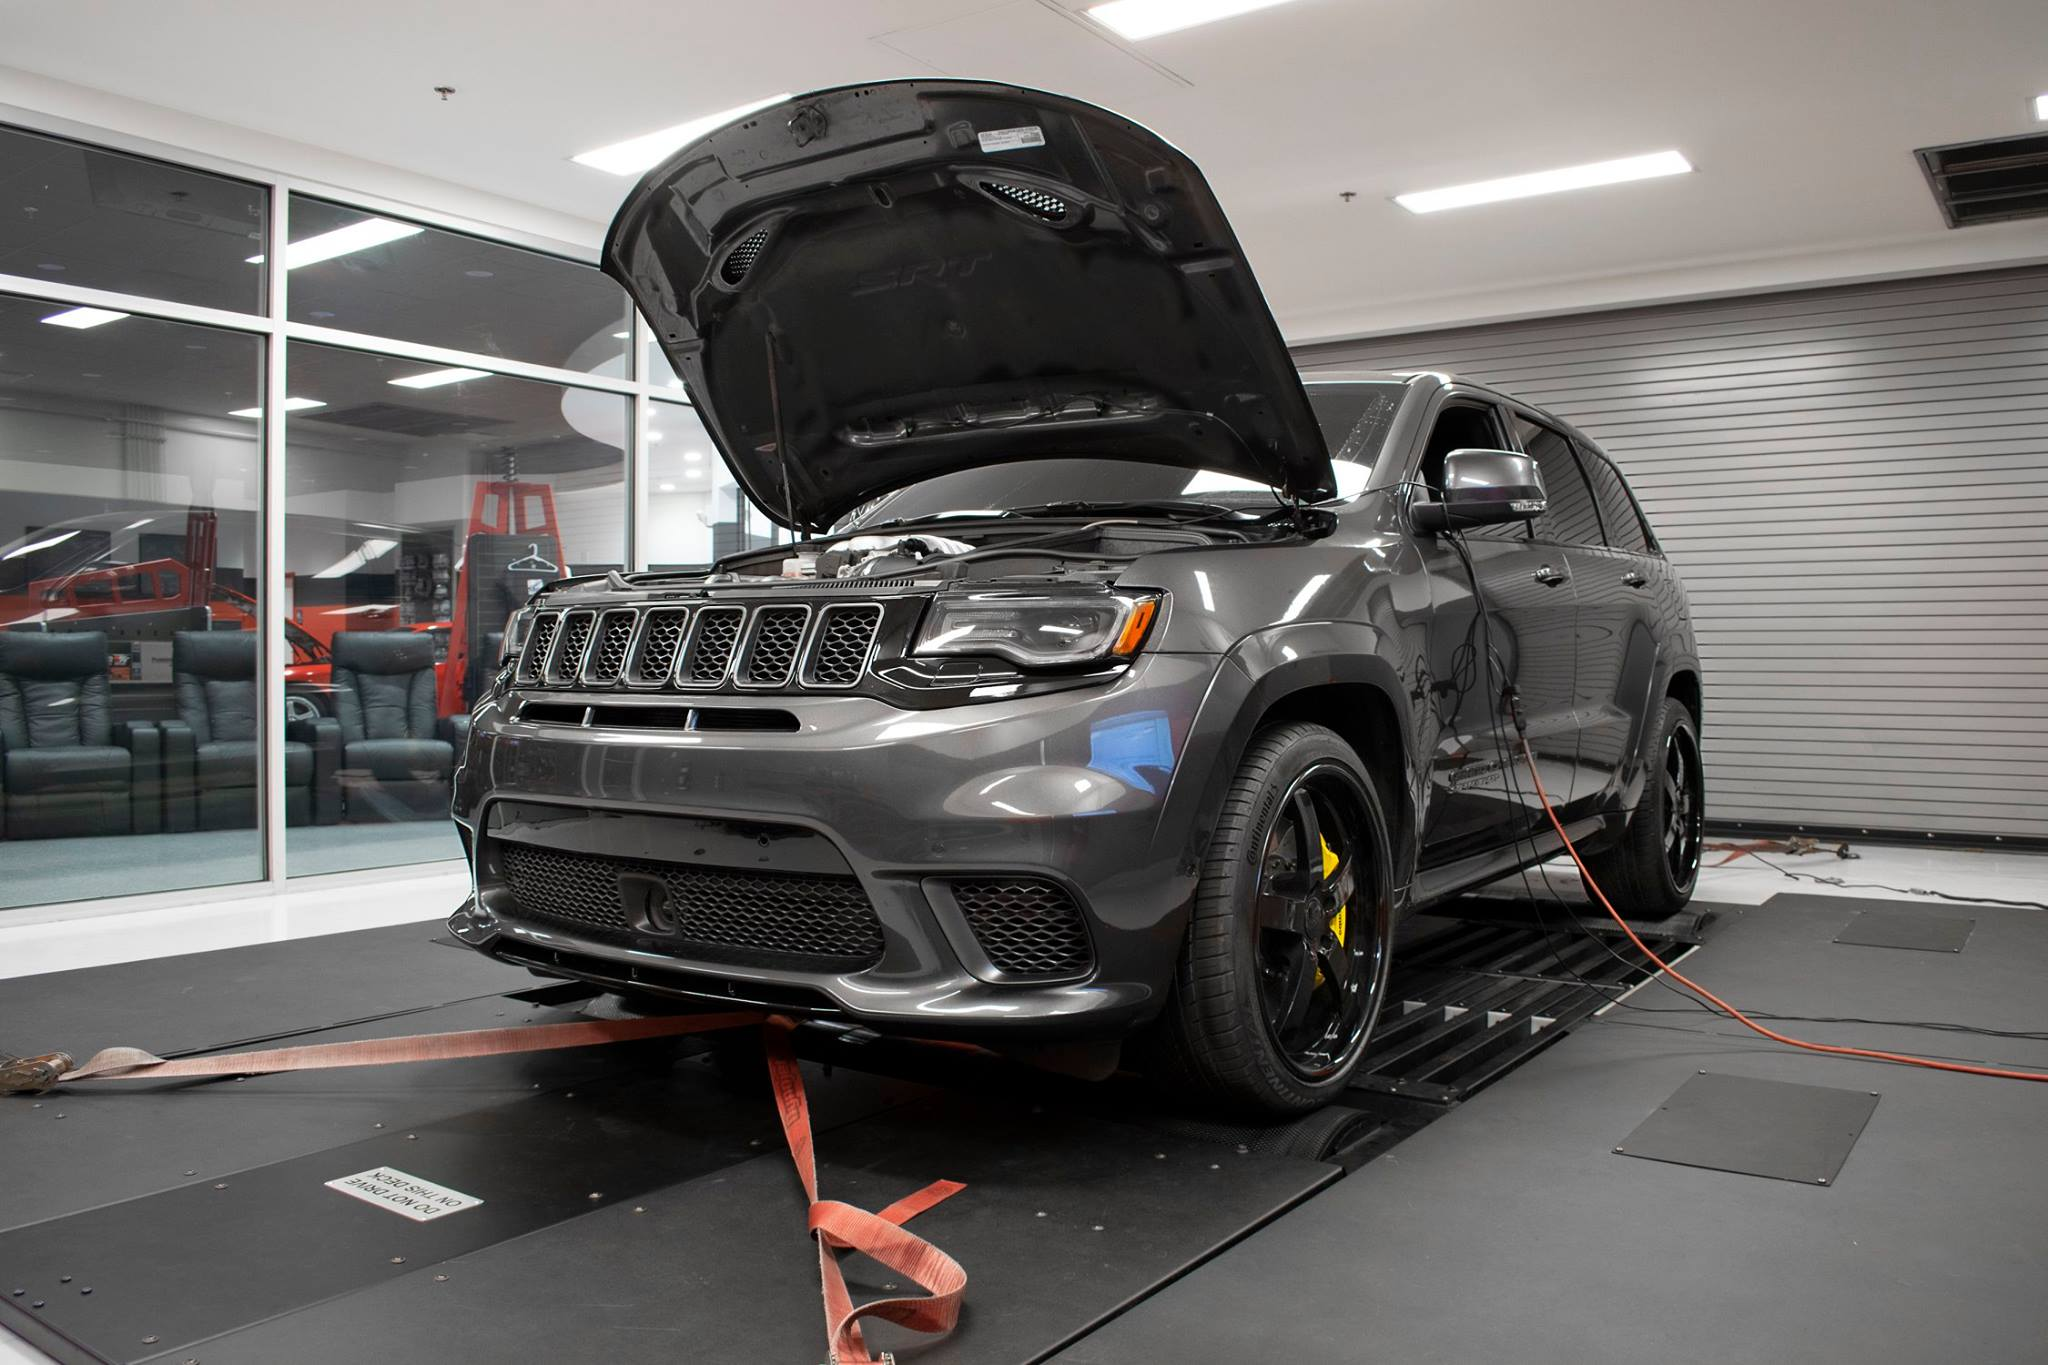 National Speed - 2018 Jeep Trackhawk: 4 Modifications to get 950hp!